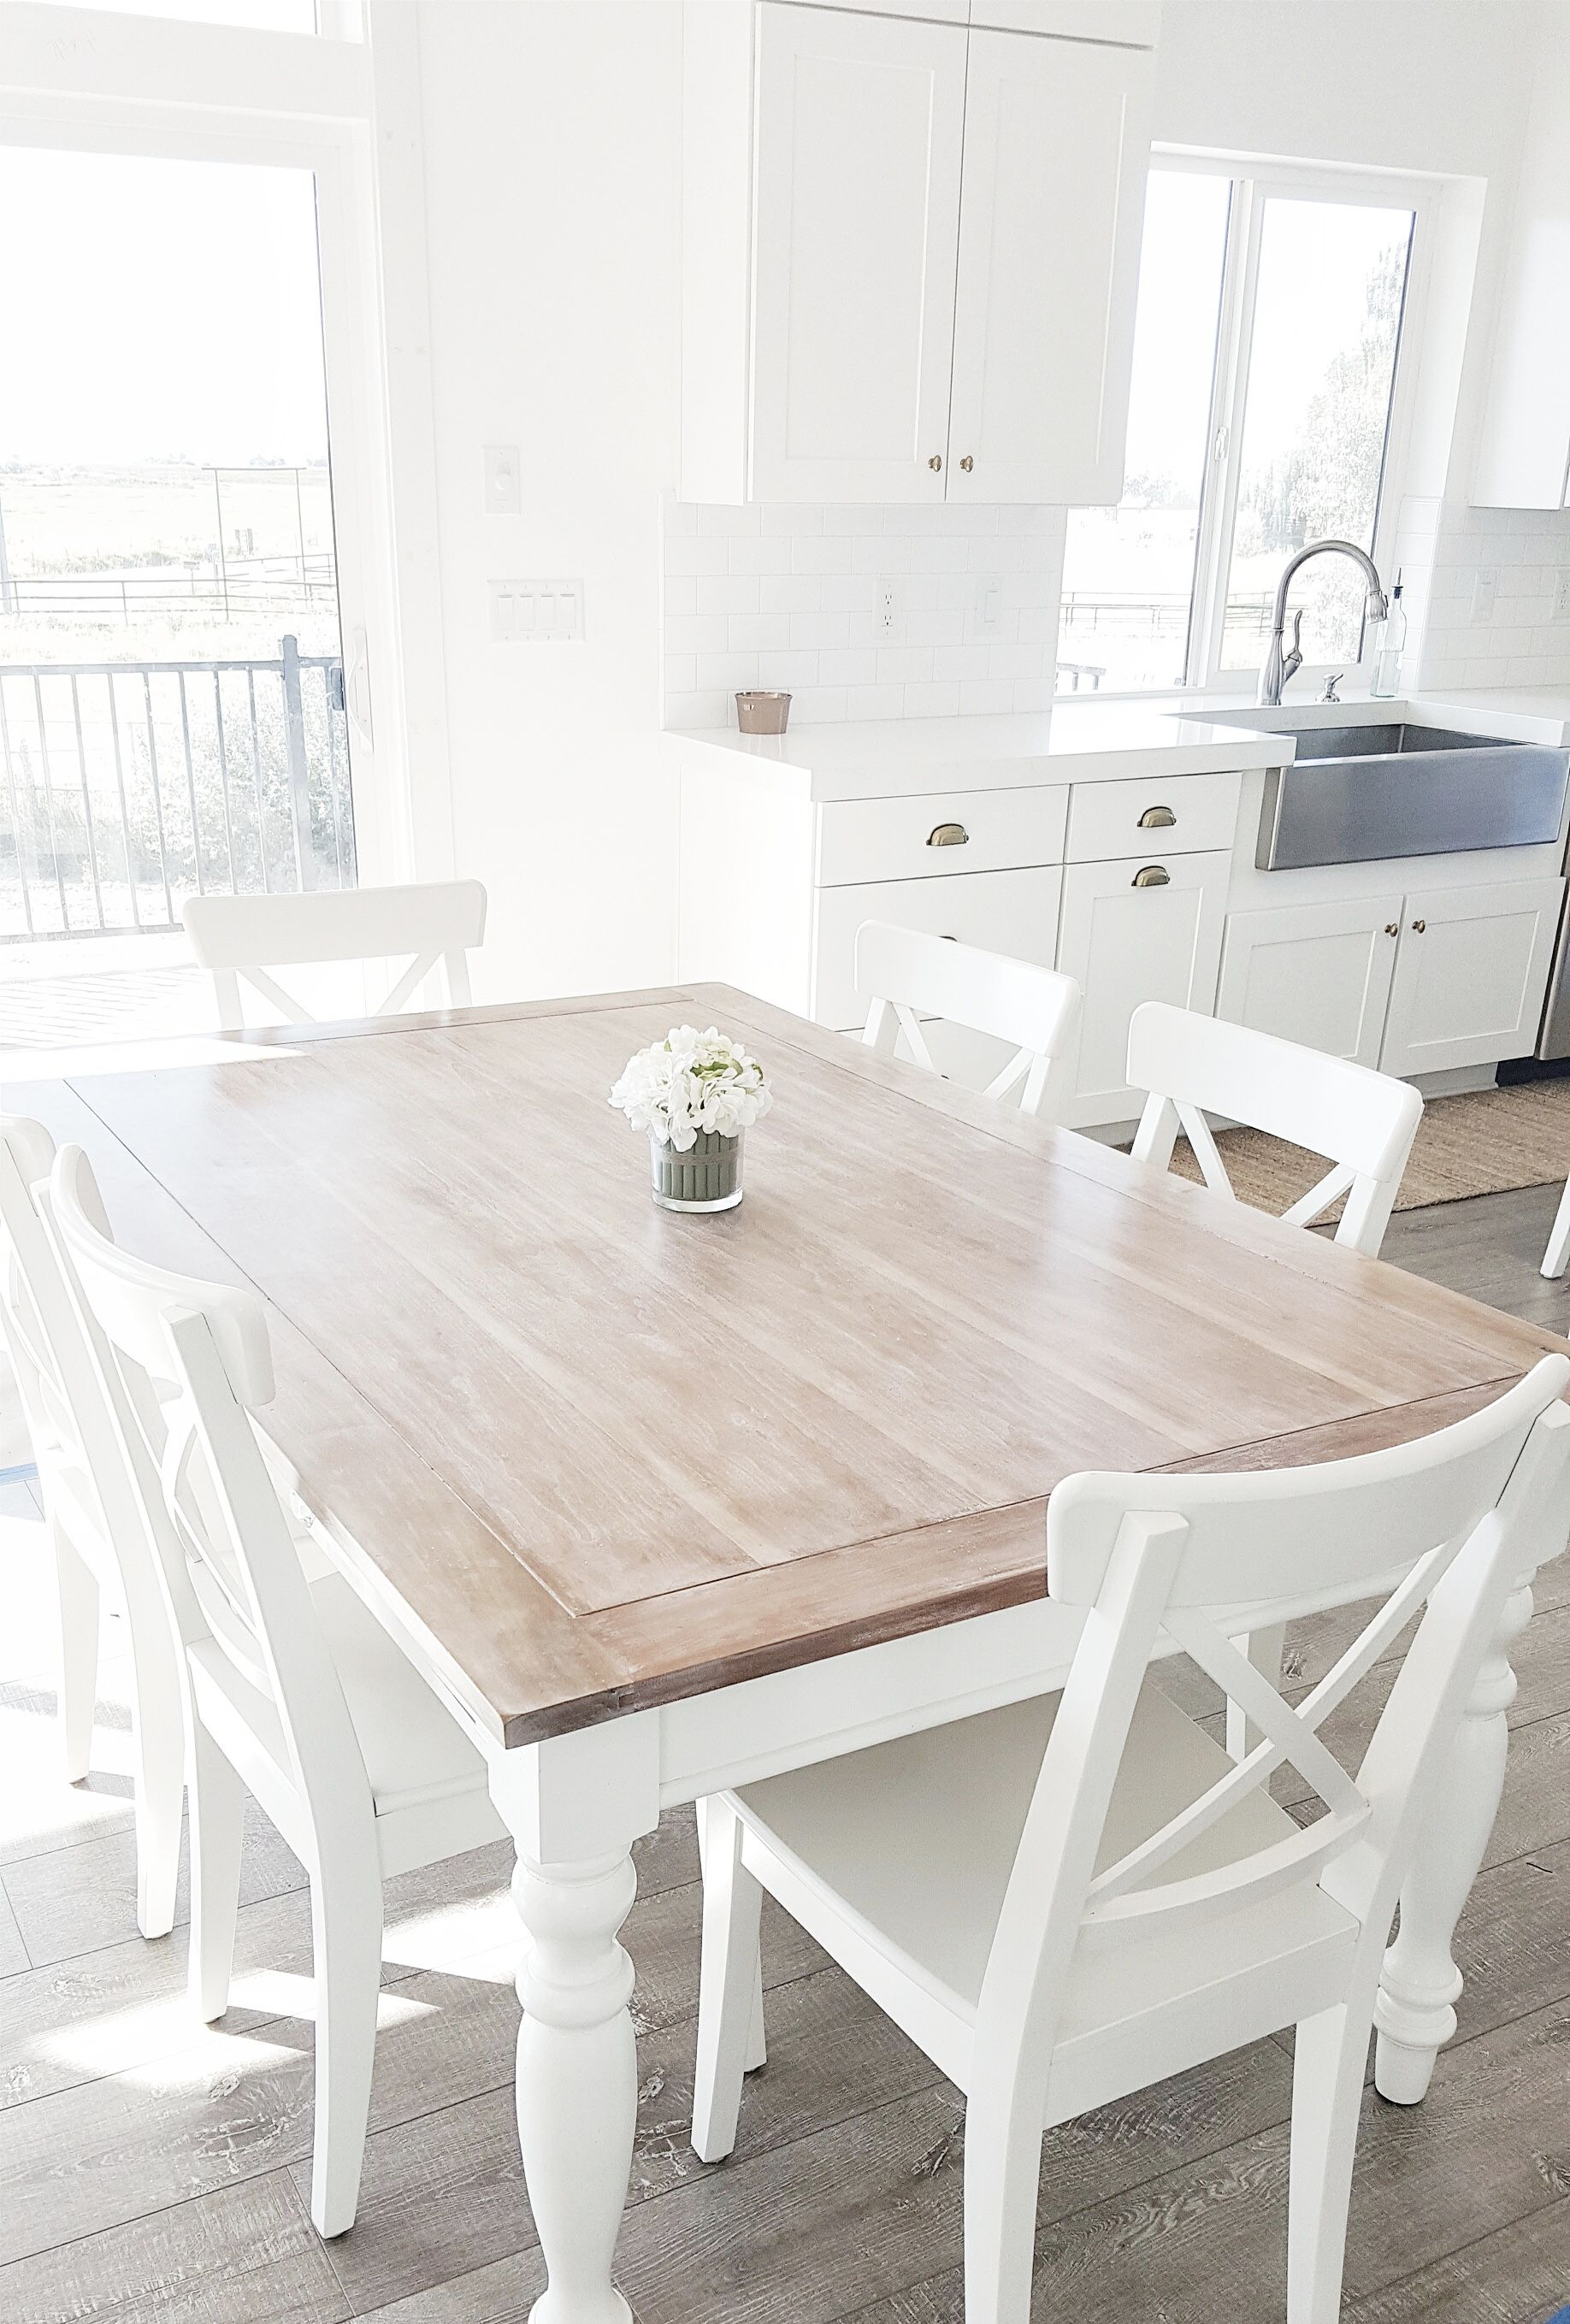 ikea kitchen table and chairs  Home   White Lane Decor   Decor ...